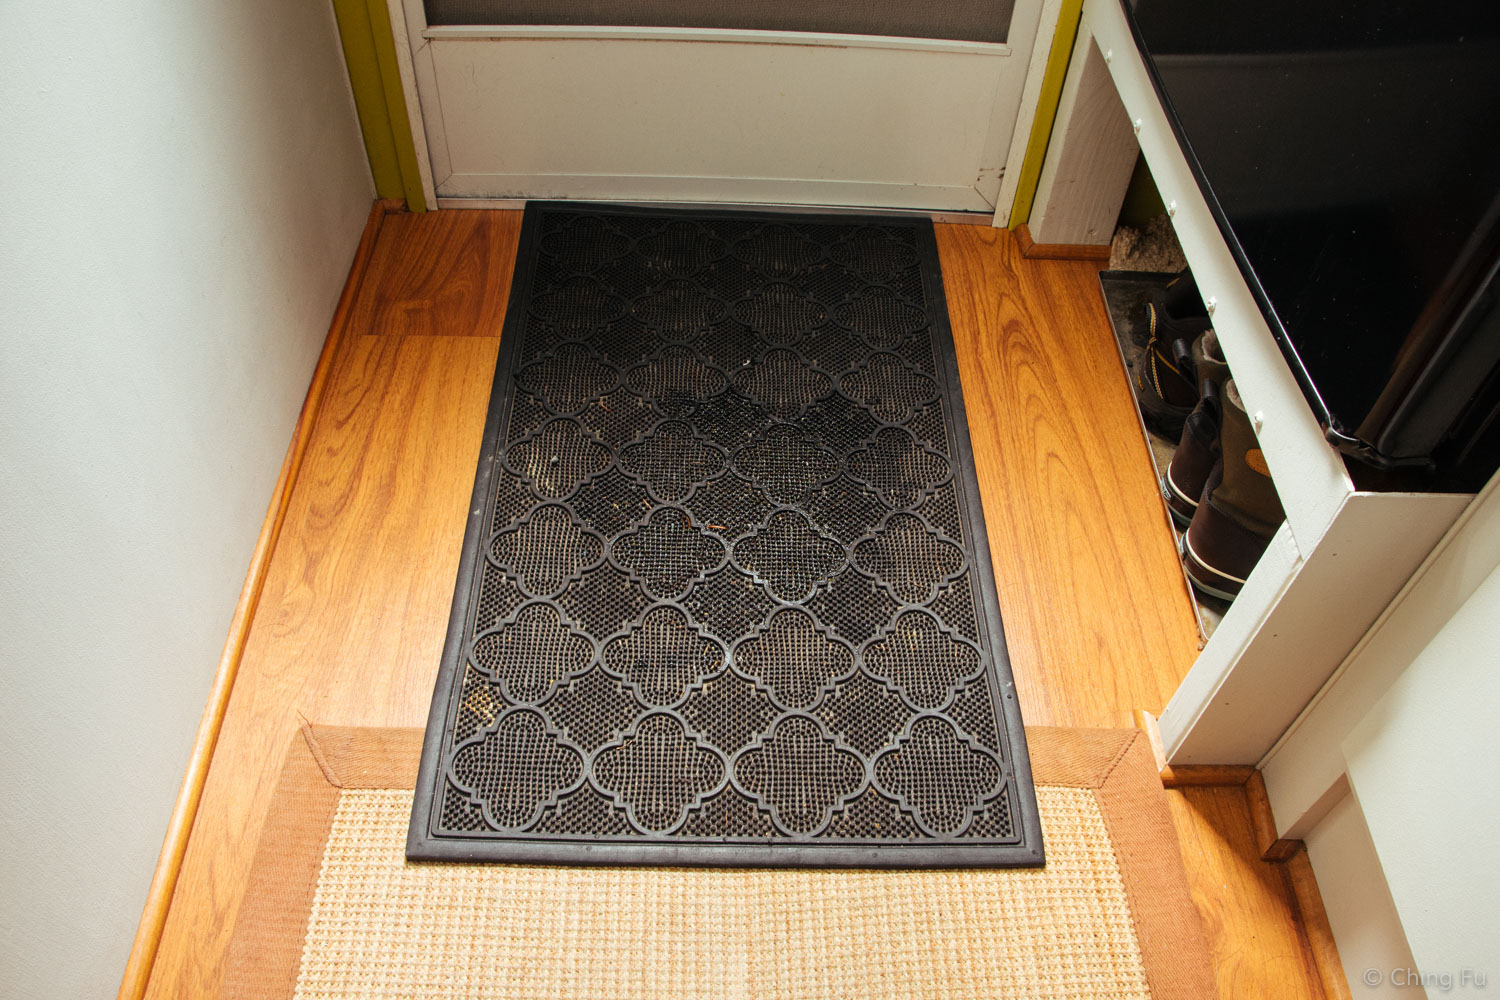 Rubber doormat to catch all the snow.